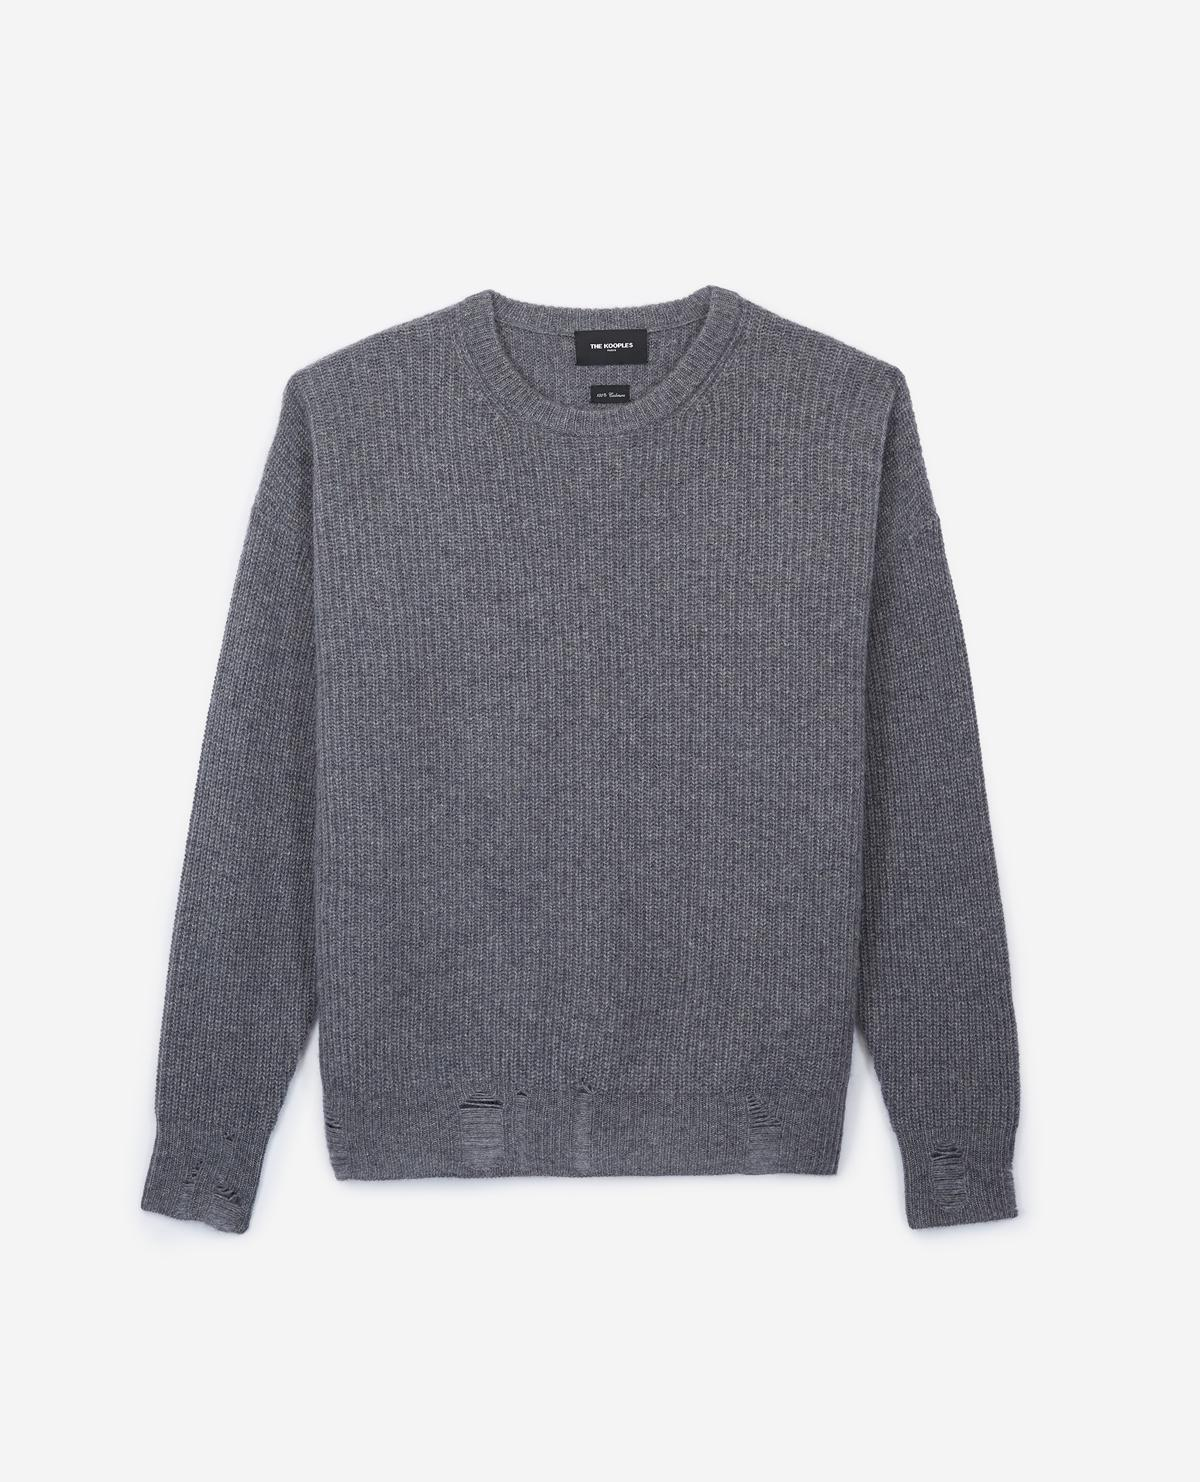 888b34861a9ff Lyst - The Kooples Ripped Cashmere Sweater for Men